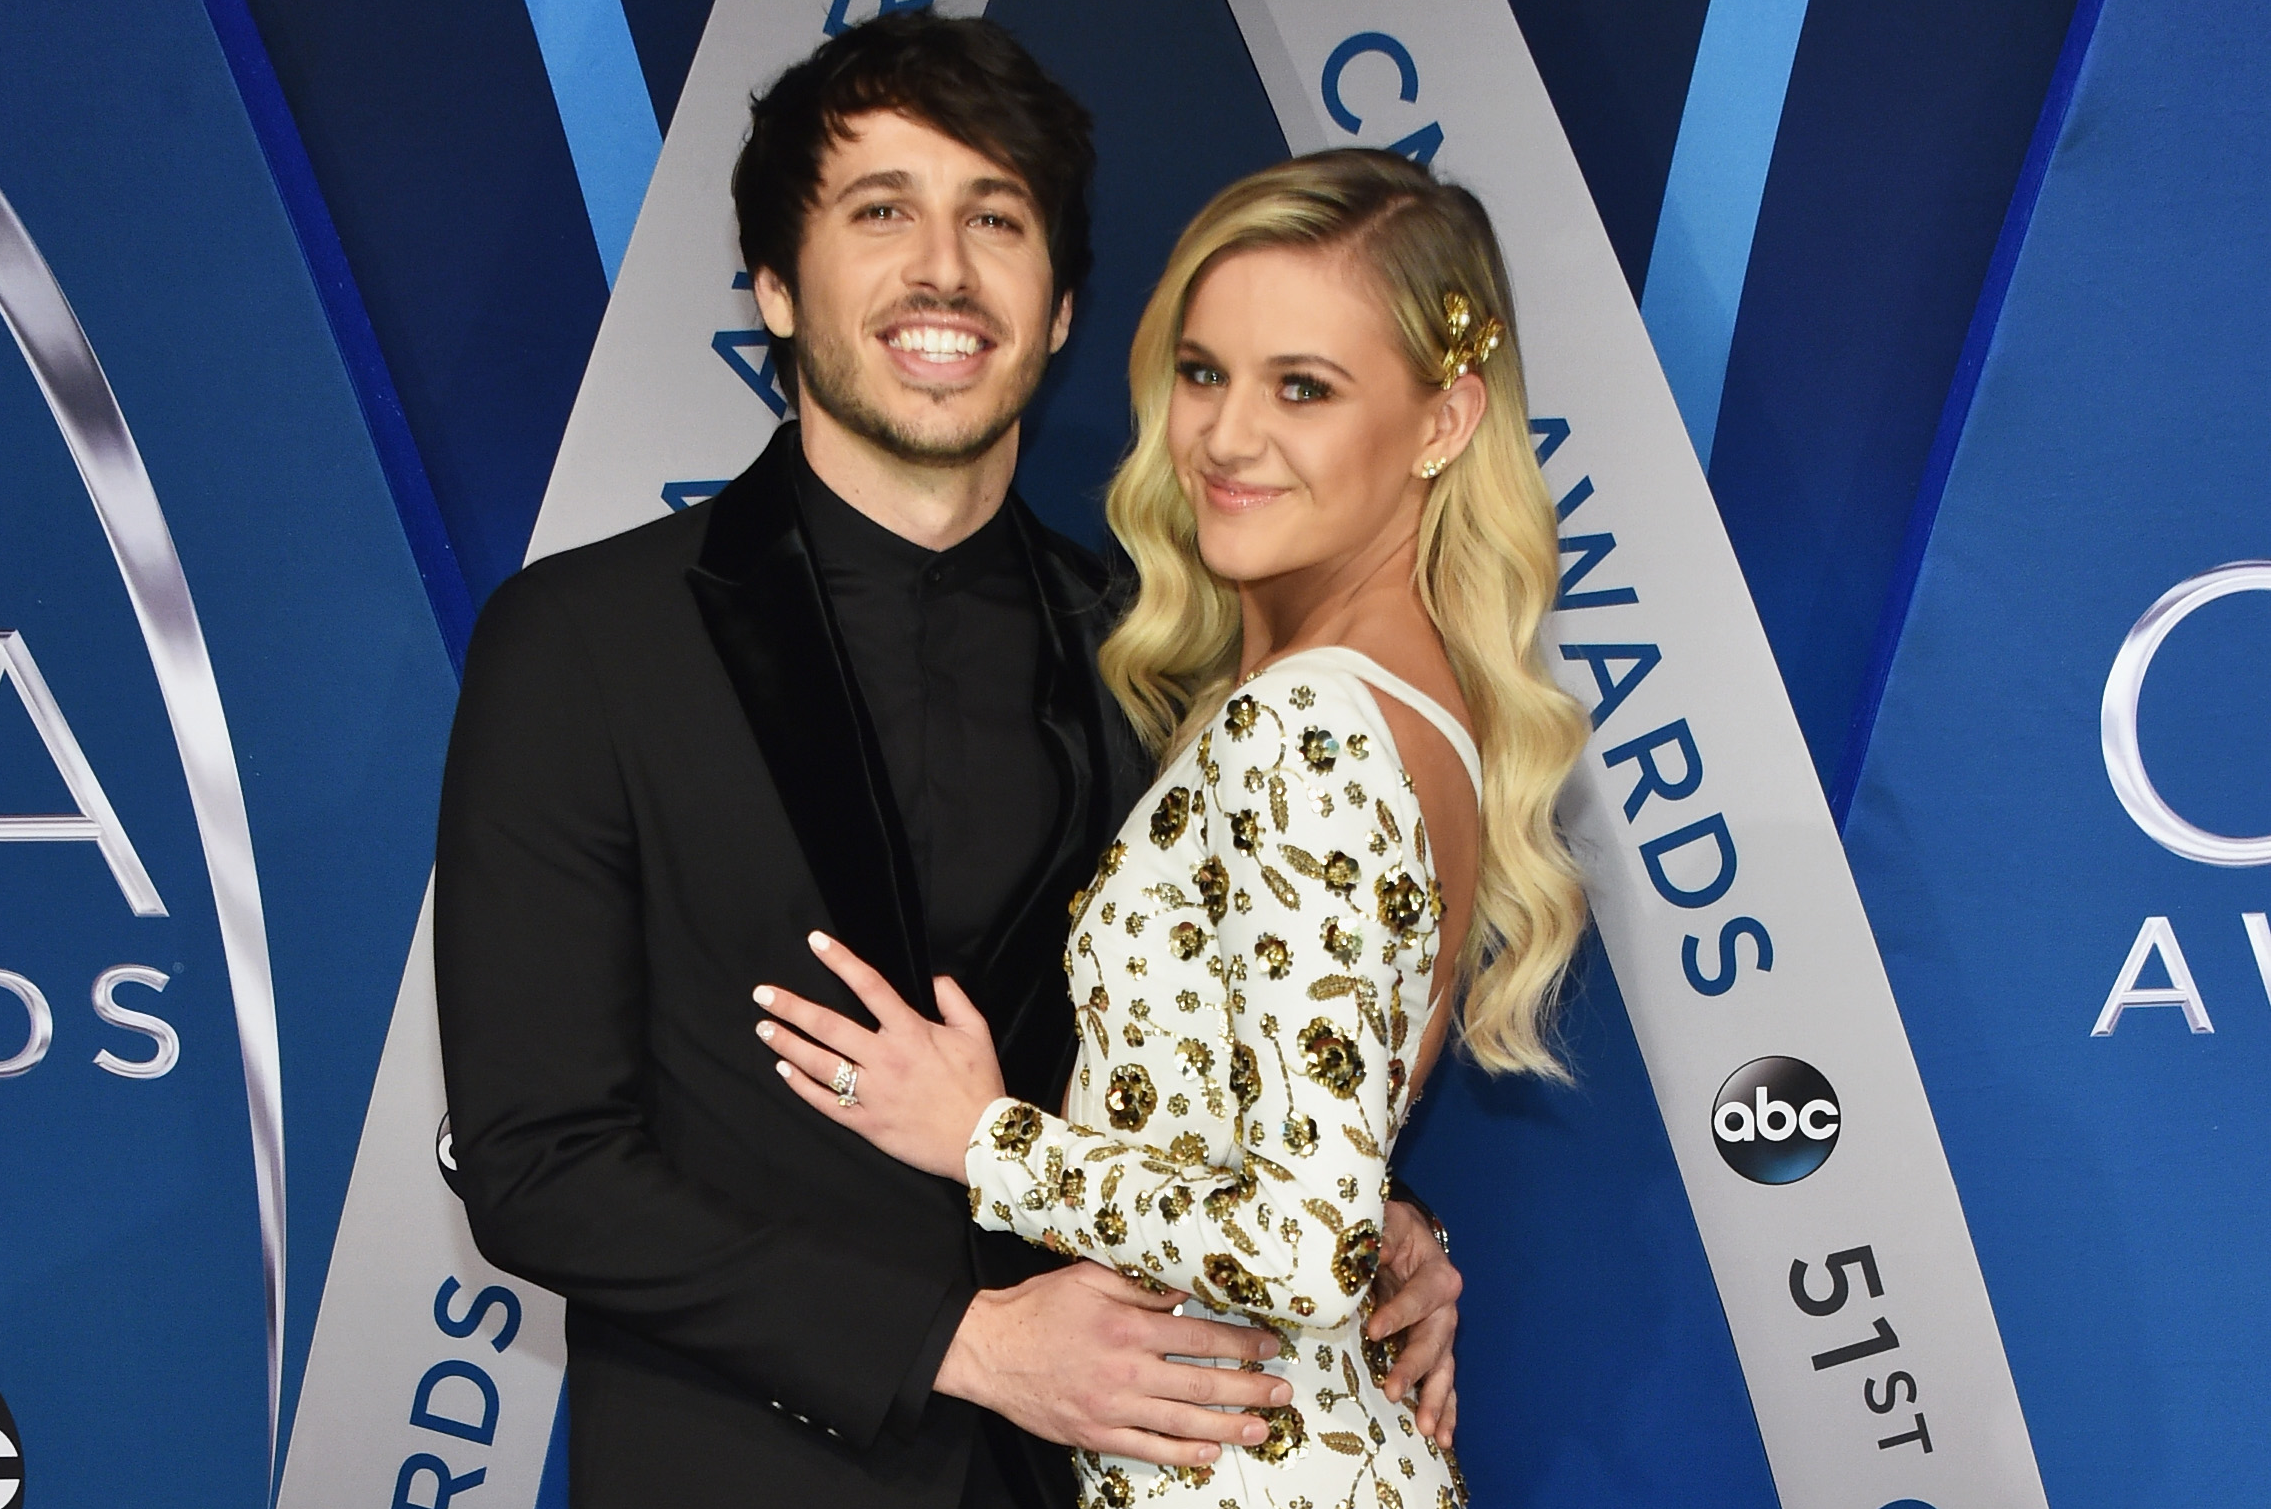 Kelsea Ballerini Marries Morgan Evans in Mexico